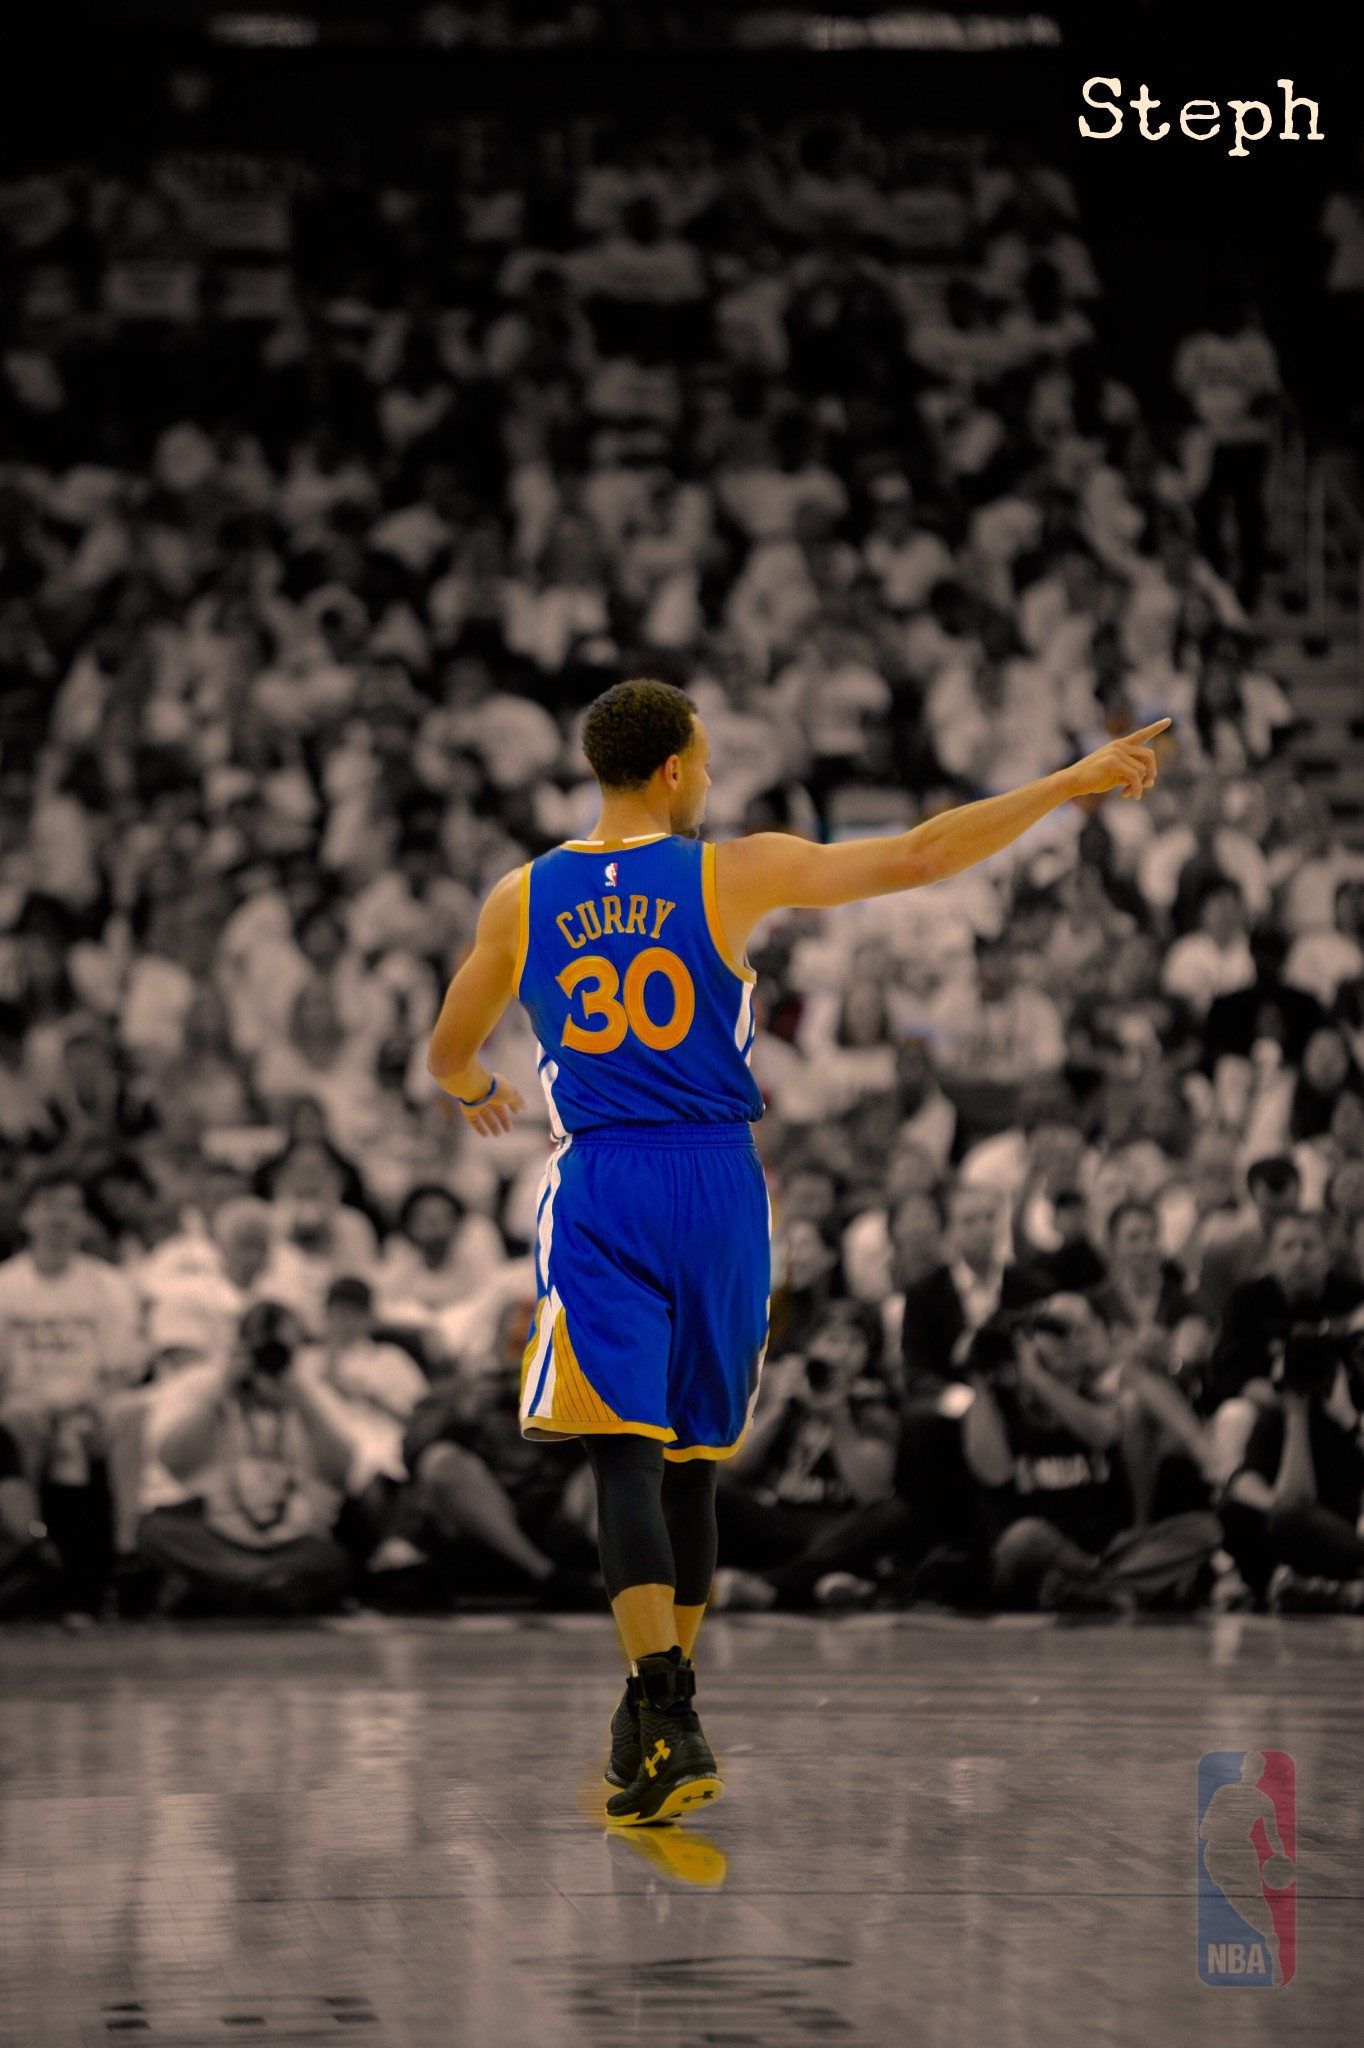 The 25+ best Stephen curry wallpaper ideas on Pinterest   Stephen curry  games, Stephen curry nationality and Stephen curry